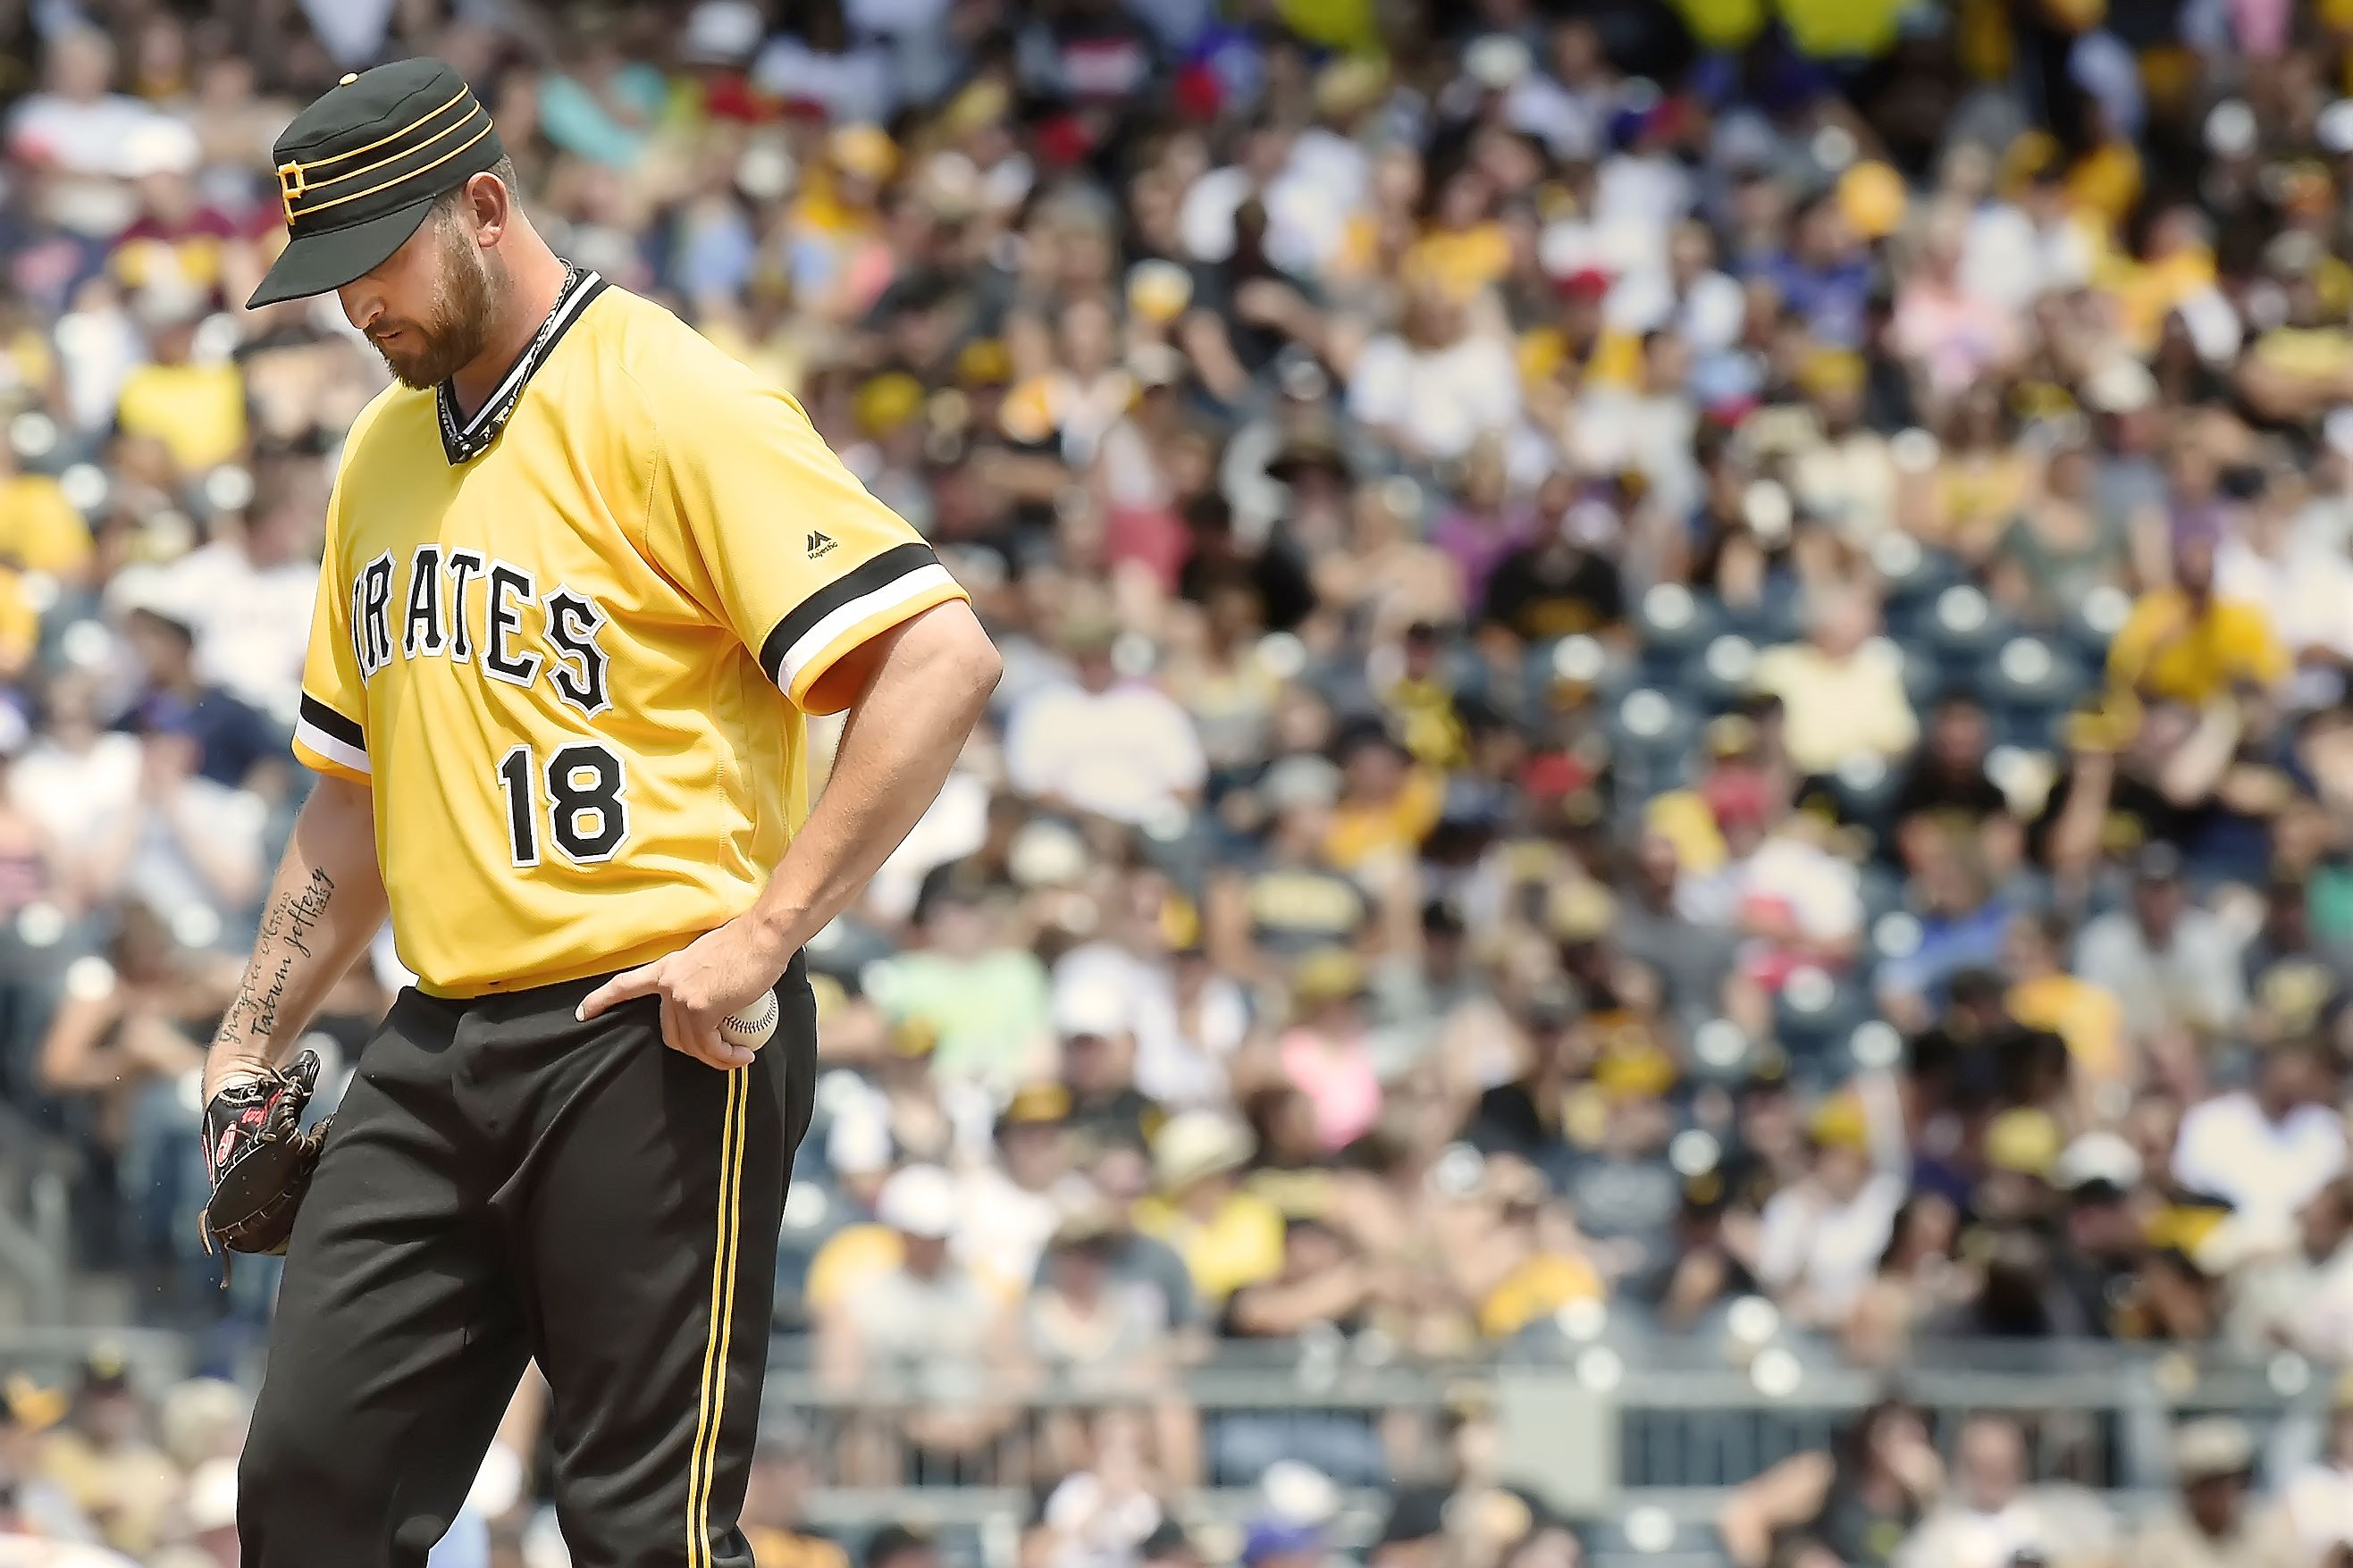 Pirates deal Niese for Bastardo, acquire Nova from Yankees